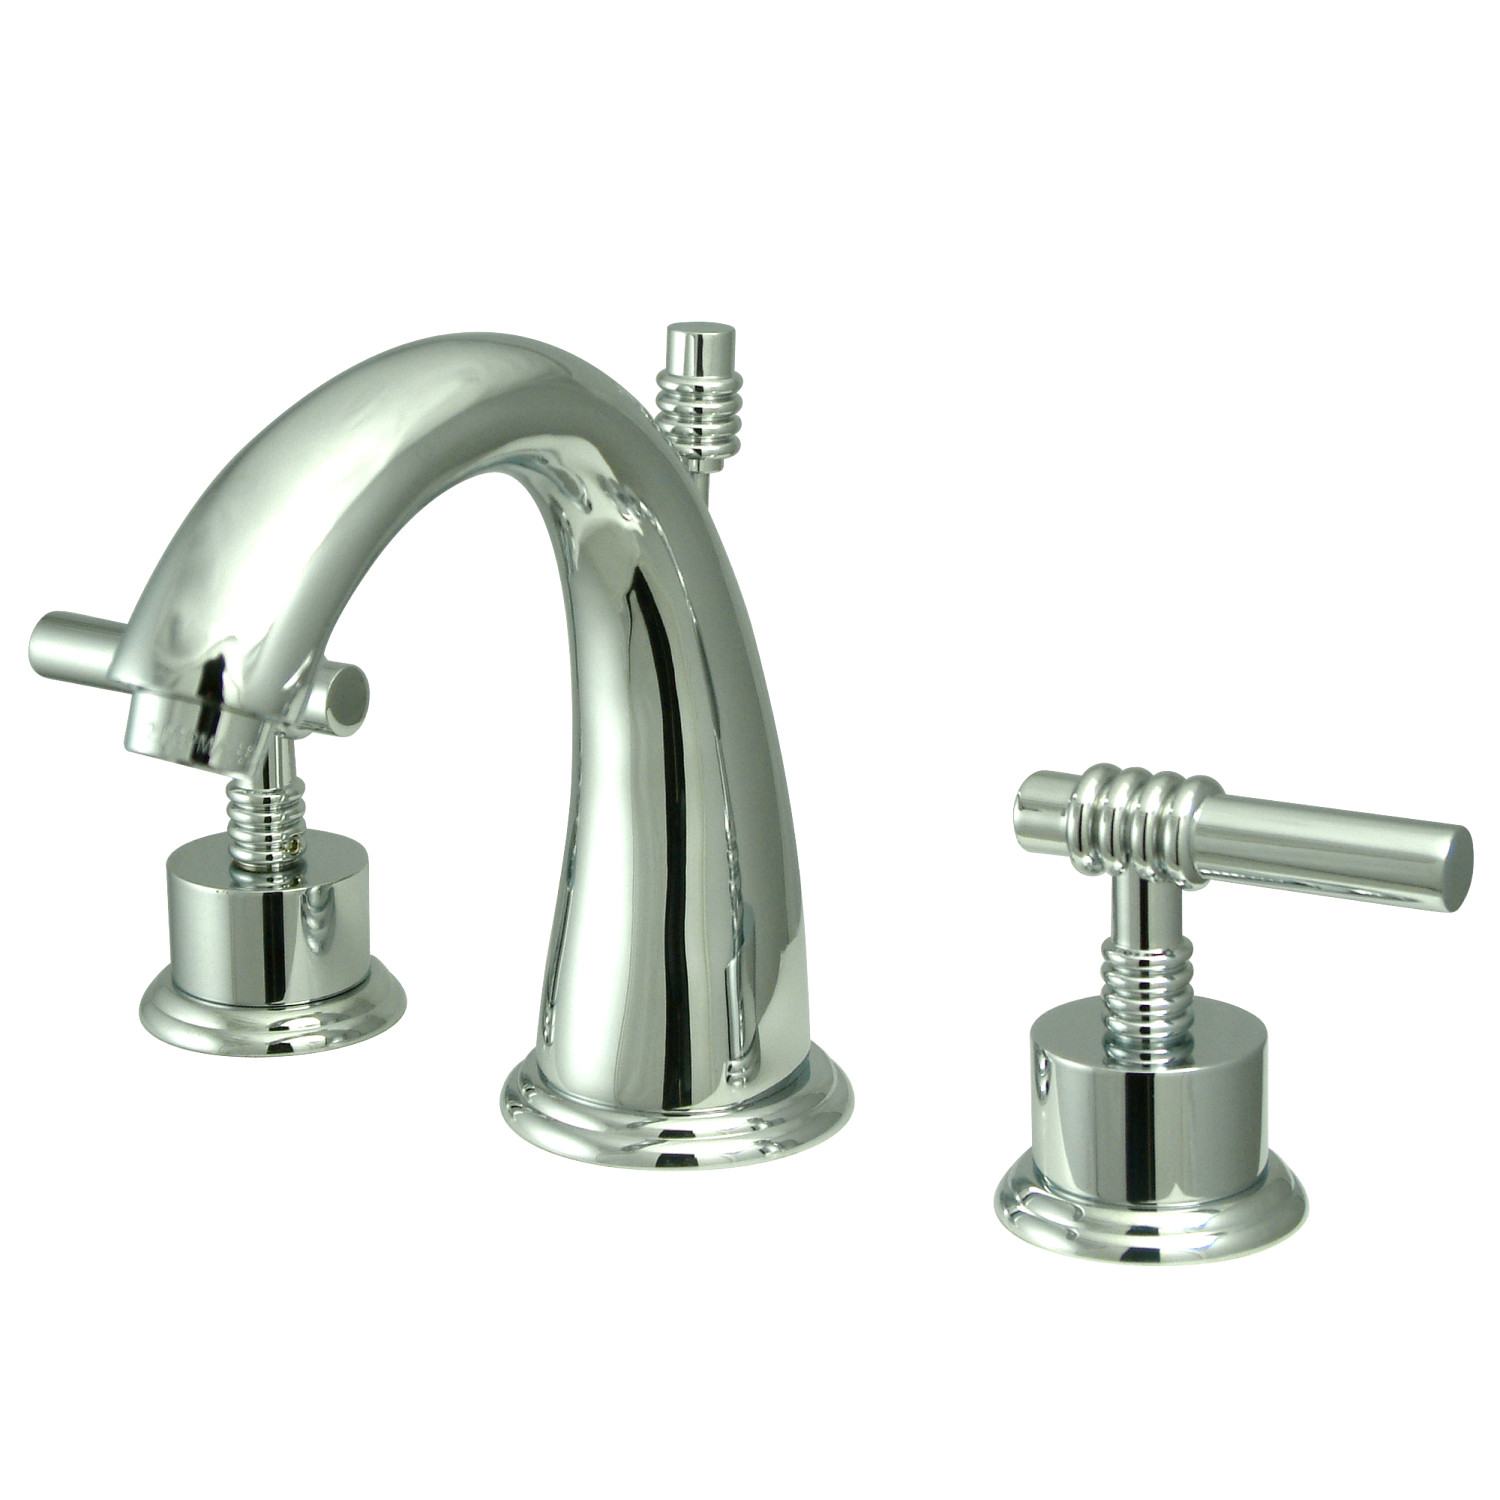 Contemporary Two-Handle 3-Hole Deck Mounted Widespread Bathroom Faucet with Brass Pop-Up in Polished Chrome